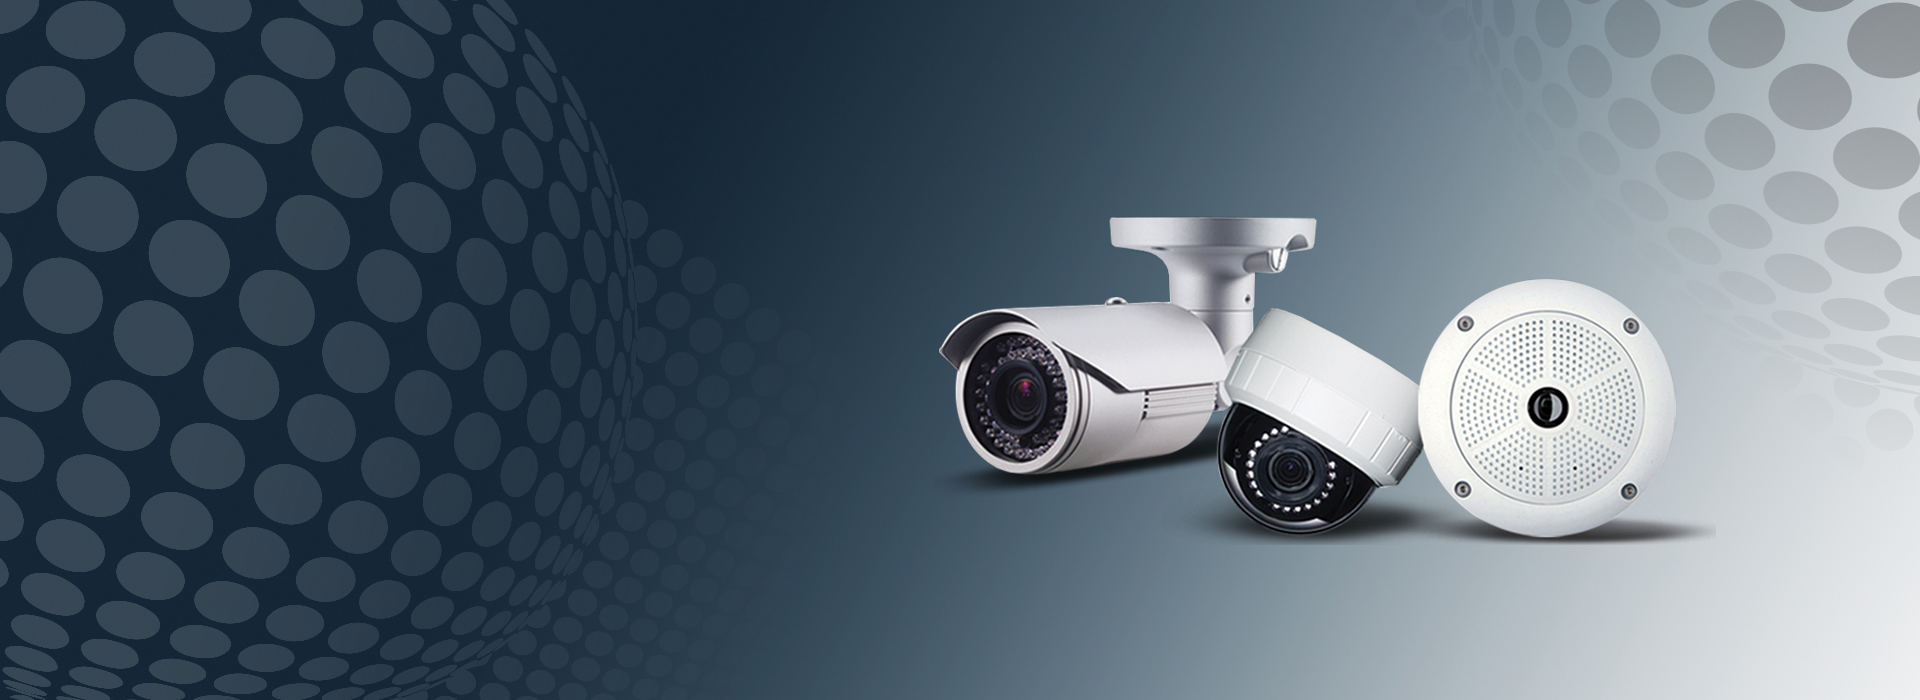 About Us Vision Cctv